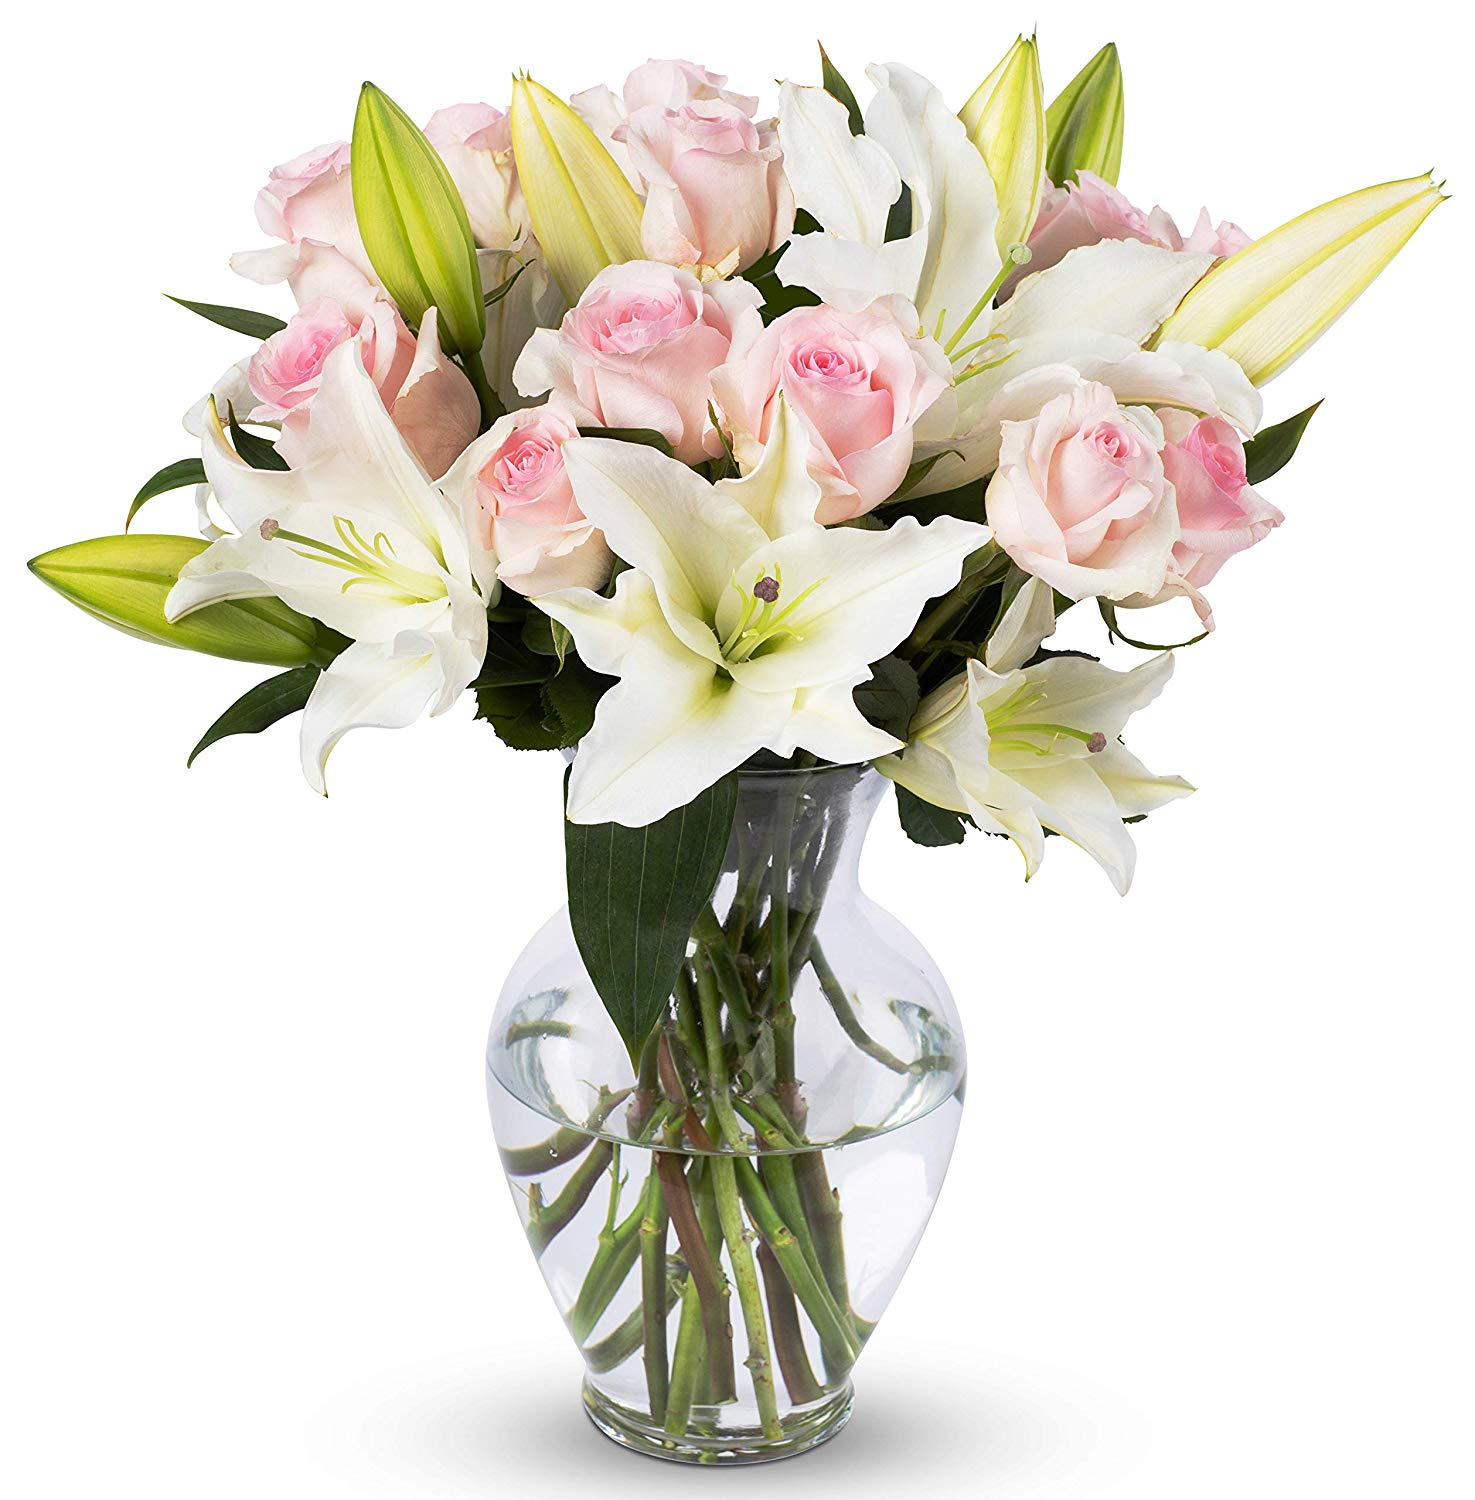 White lilies with pink roses